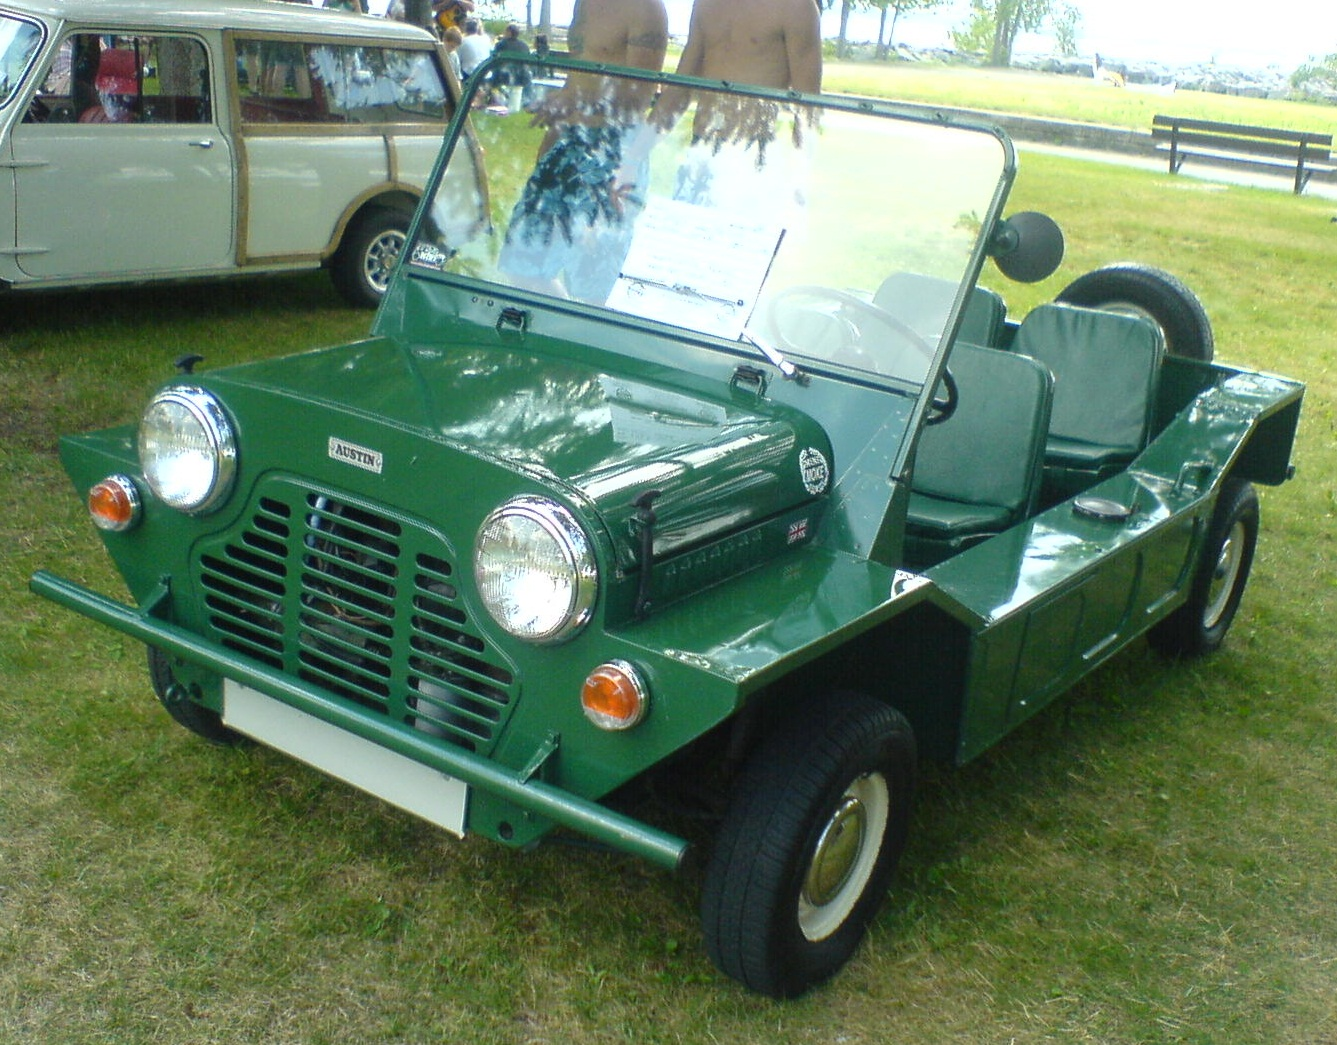 http://upload.wikimedia.org/wikipedia/commons/0/0b/%2767_Austin_Mini_Moke_(Ottawa_British_Car_Show_%2710).jpg